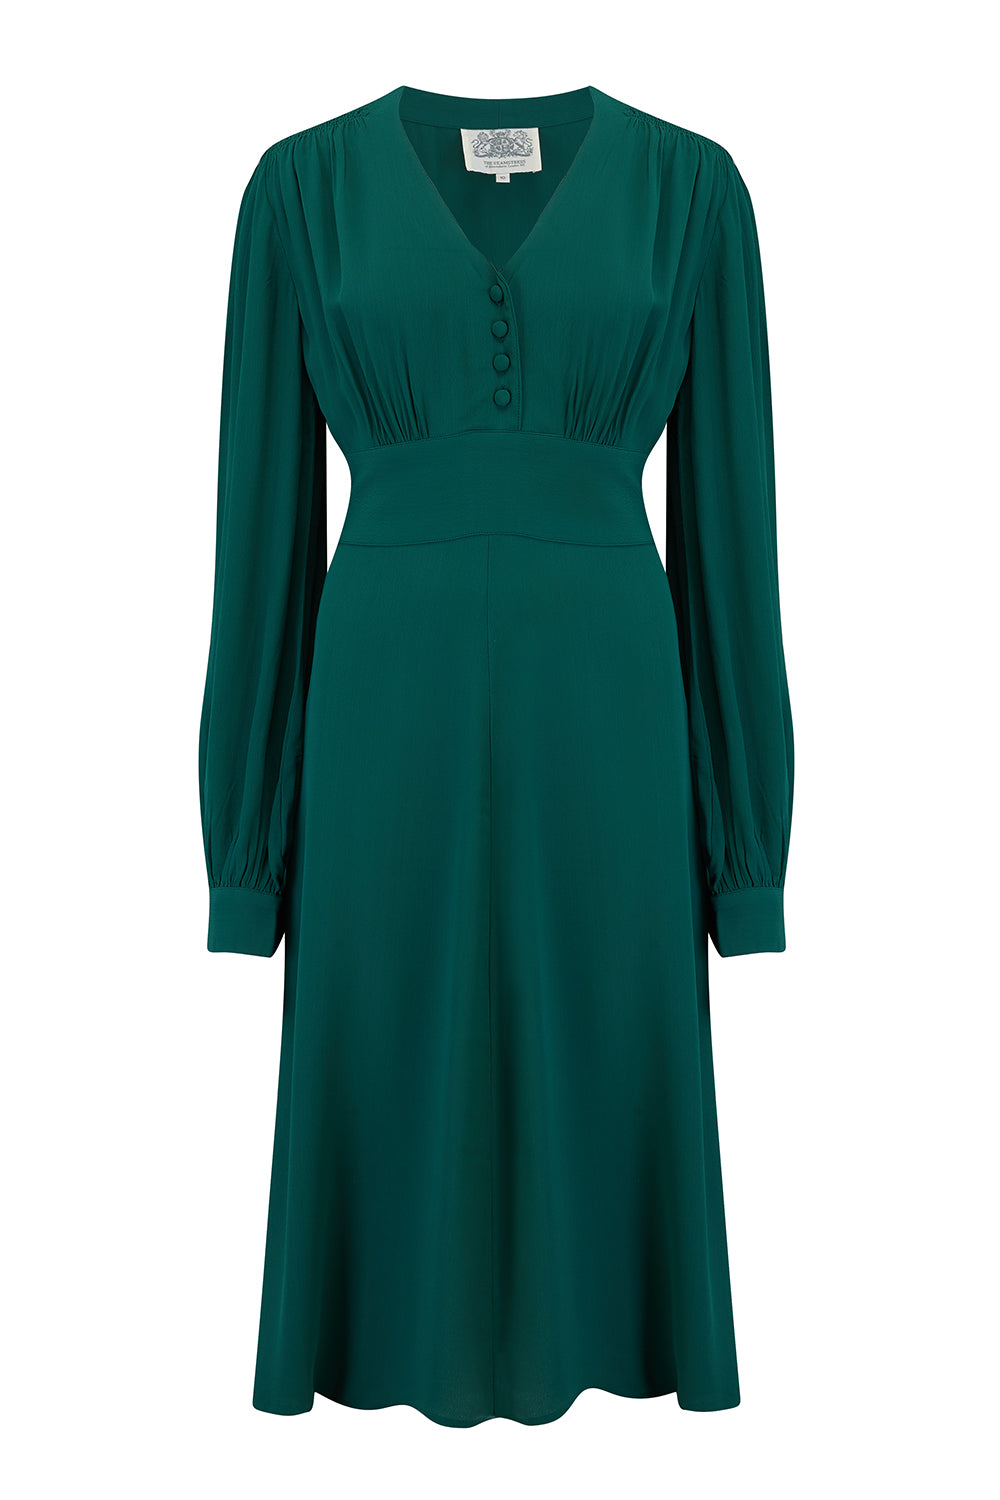 1940s Dress Styles Ava Dress in Vintage Green Classic 1940s Style Long Sleeve Dress £89.00 AT vintagedancer.com